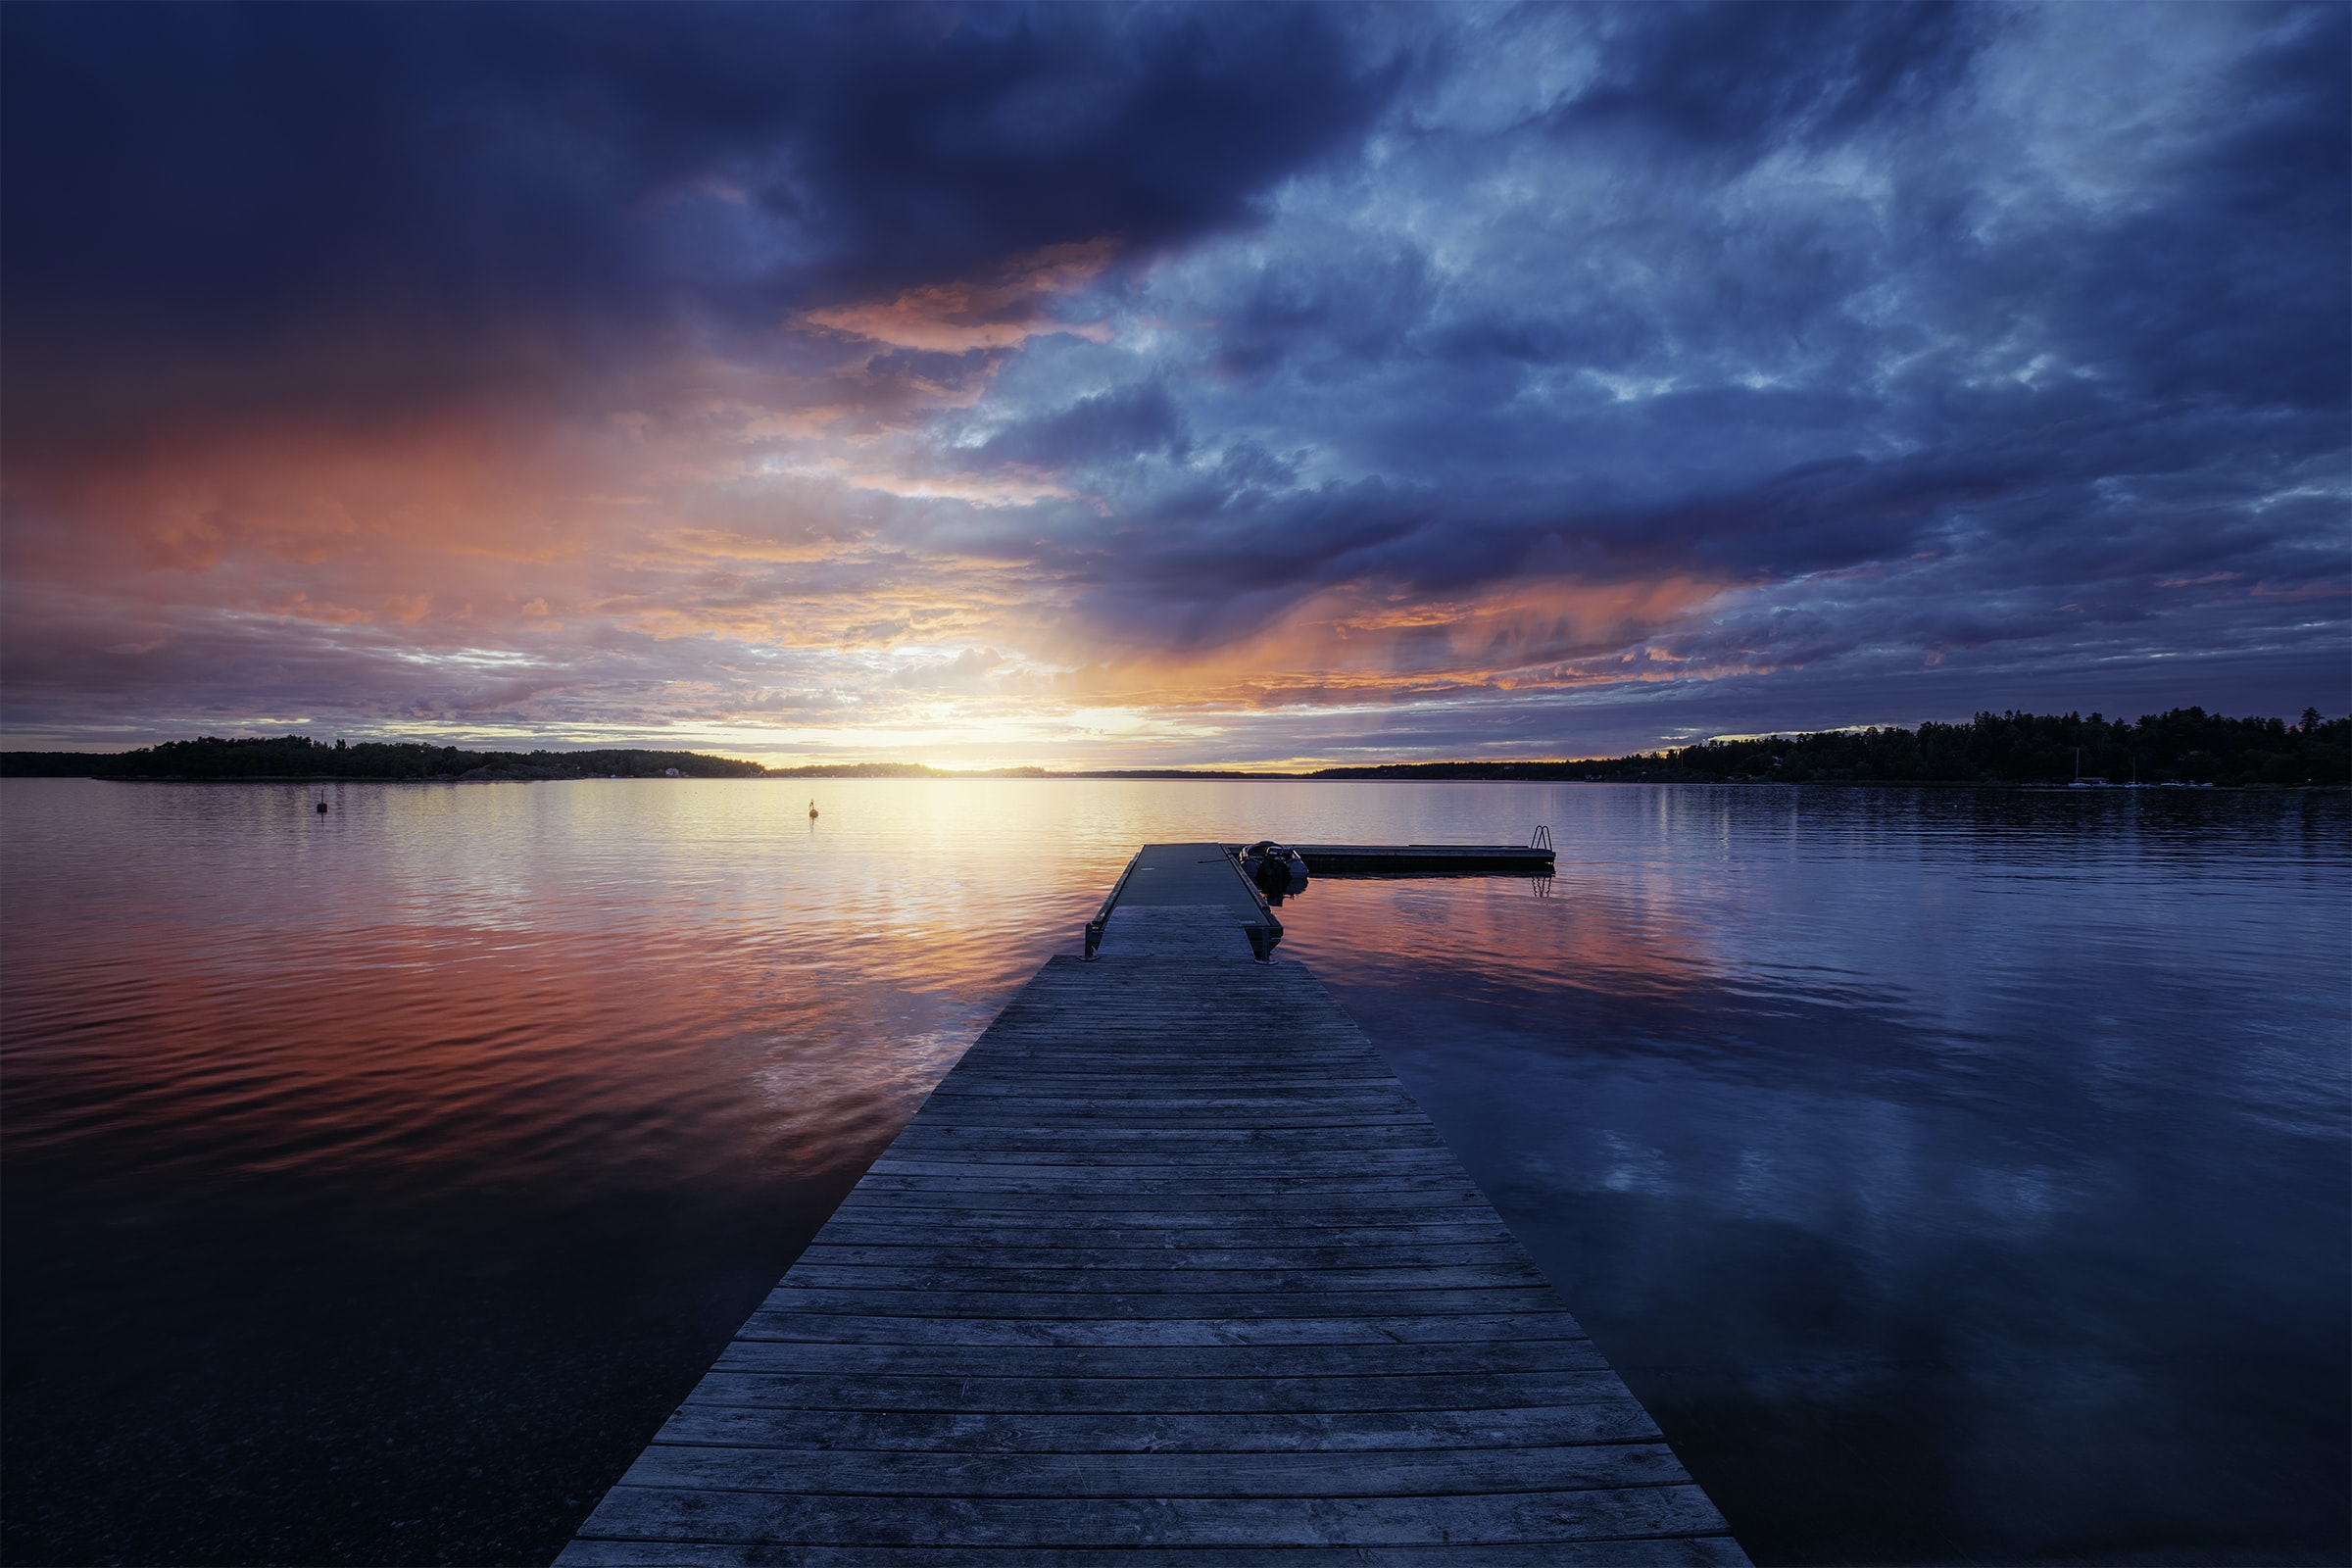 Red and blue sky over a long wooden pier on a lake during sunset